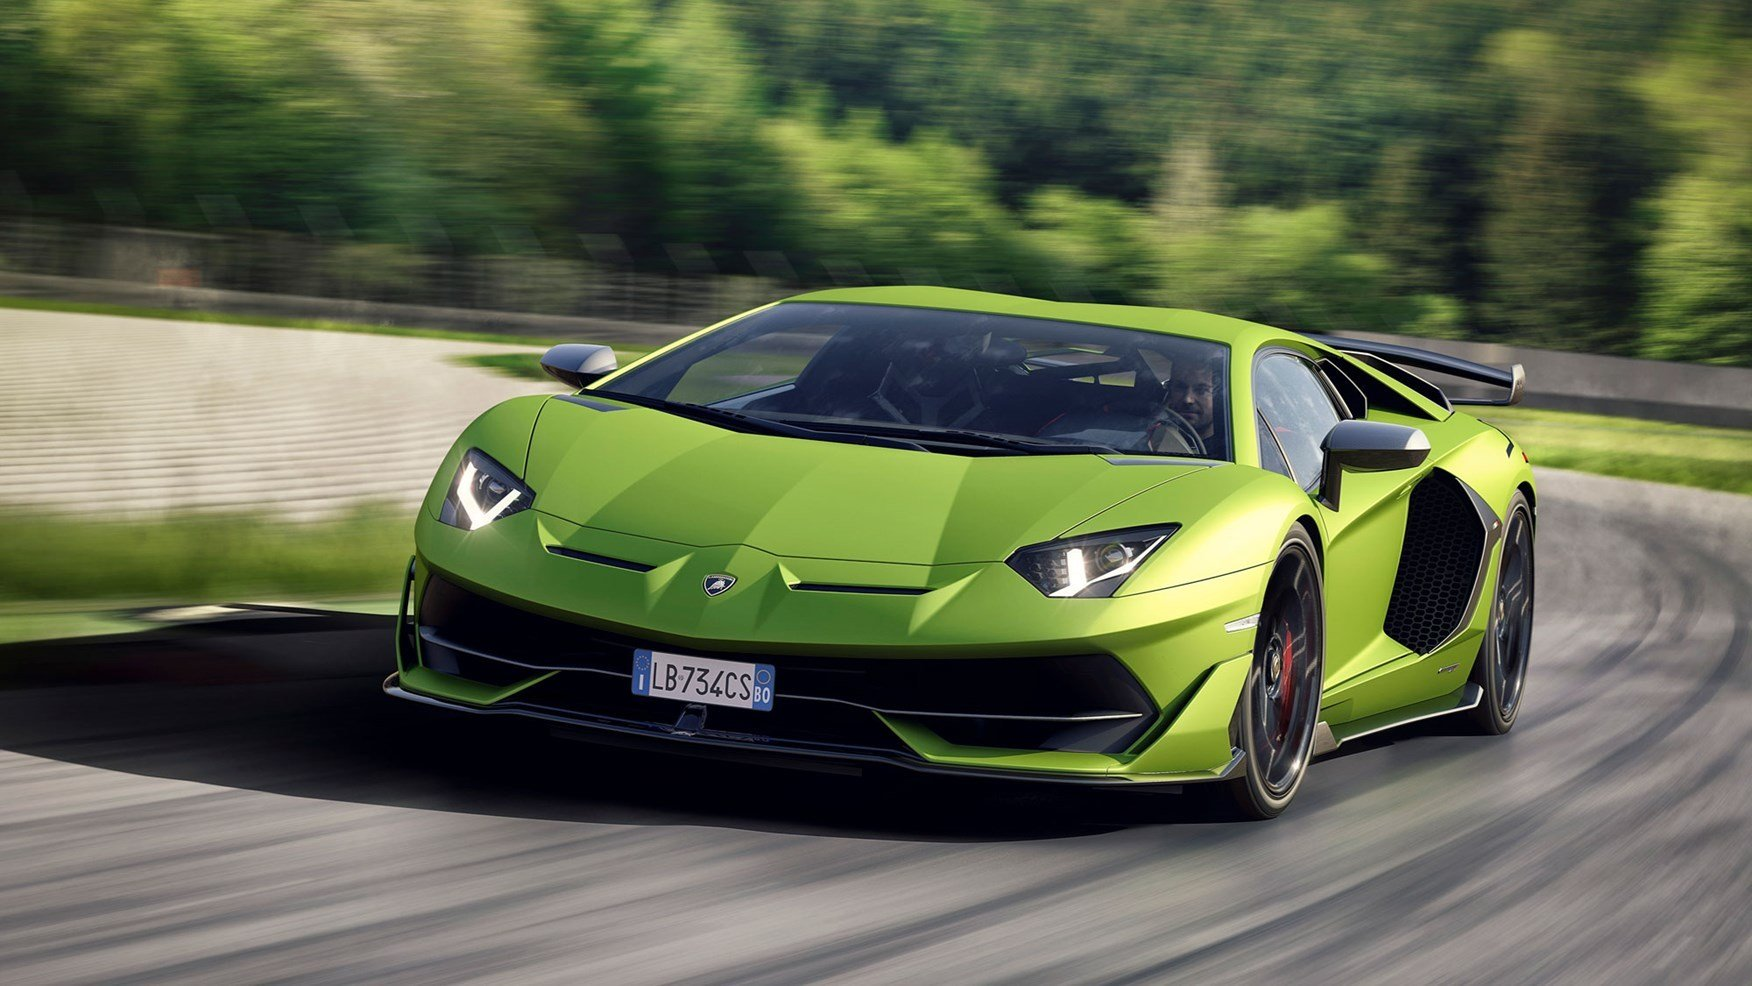 New Outrageous 217Mph Lamborghini Aventador Svj Roadster Chops On This Month